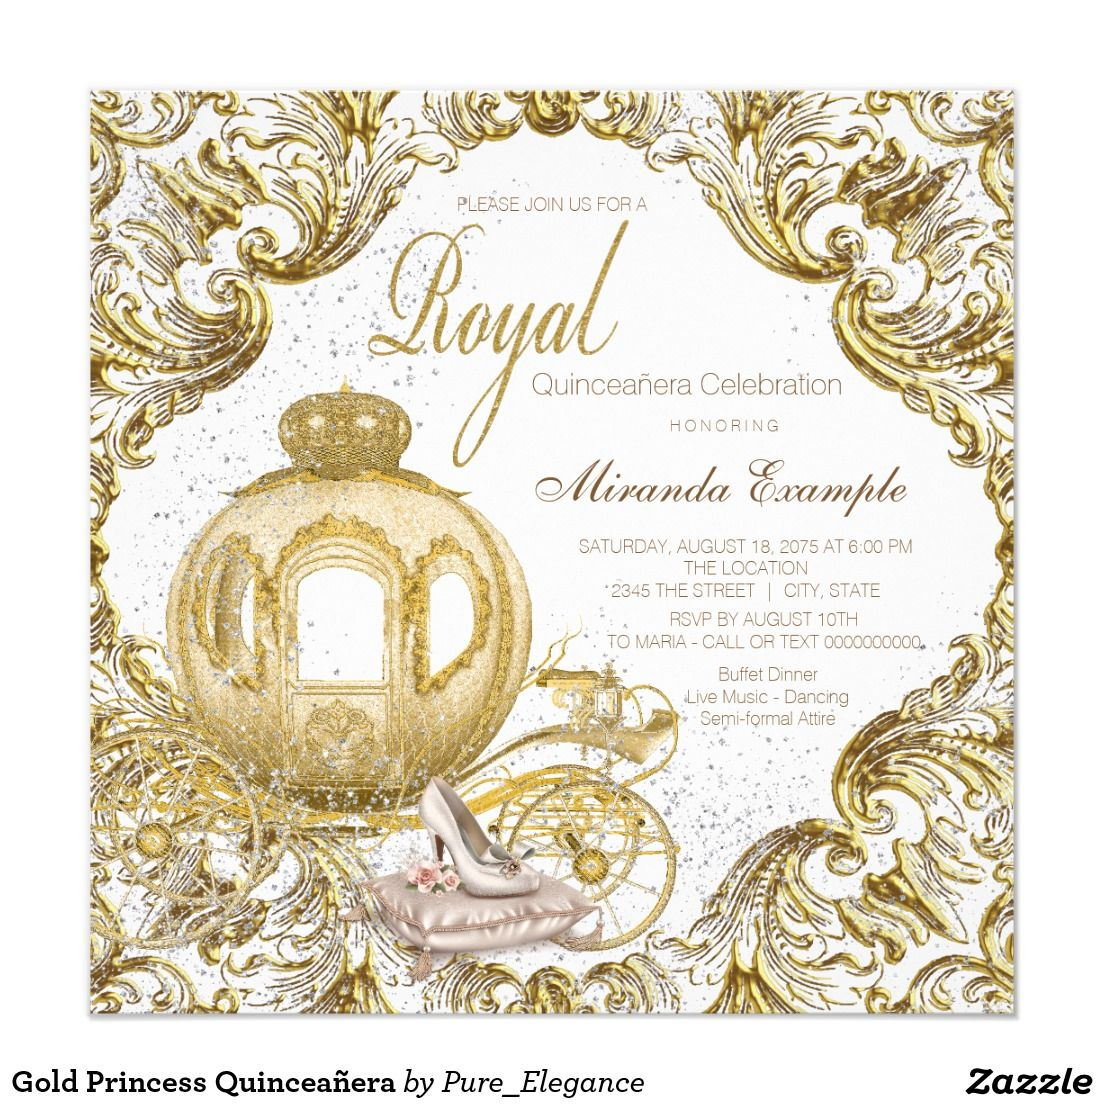 Gold Princess Quinceaera Card Princess invitations and Fairytale